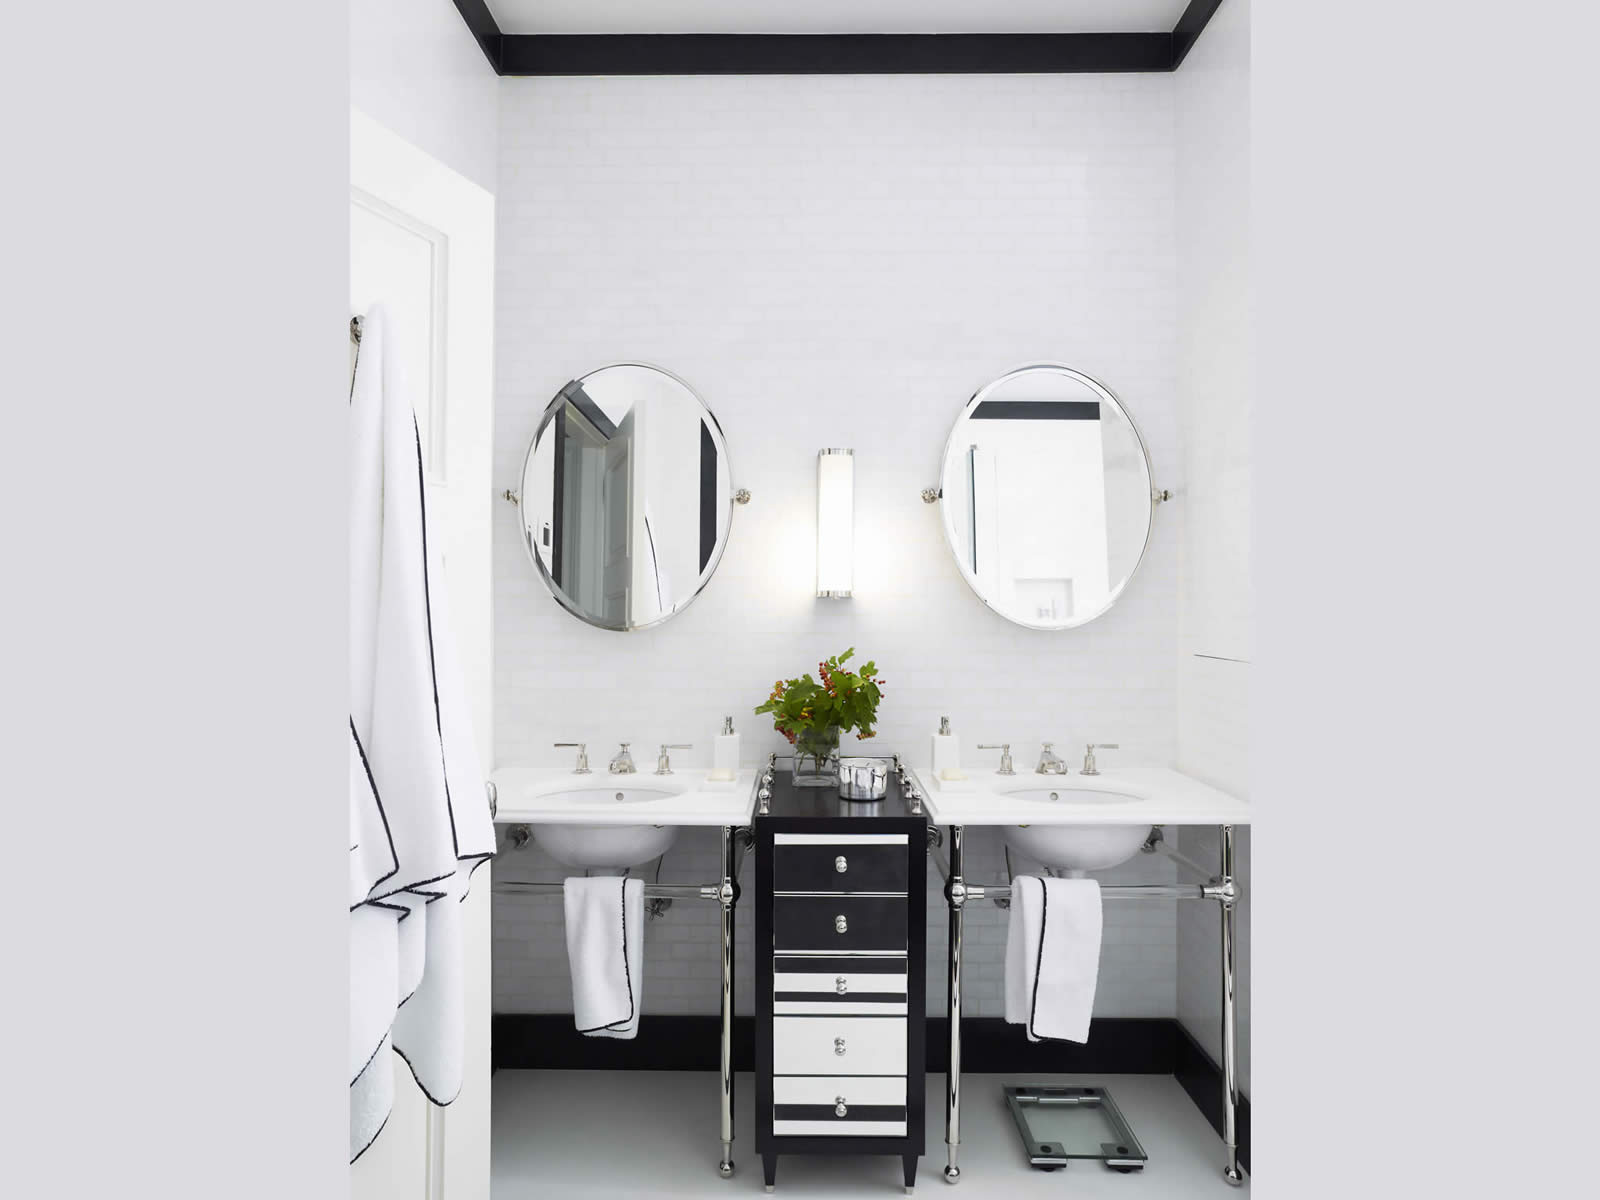 serenity decor bathroom wayfair for deep you mirrors engravings oval vanity ll pillows accent wall love mirror